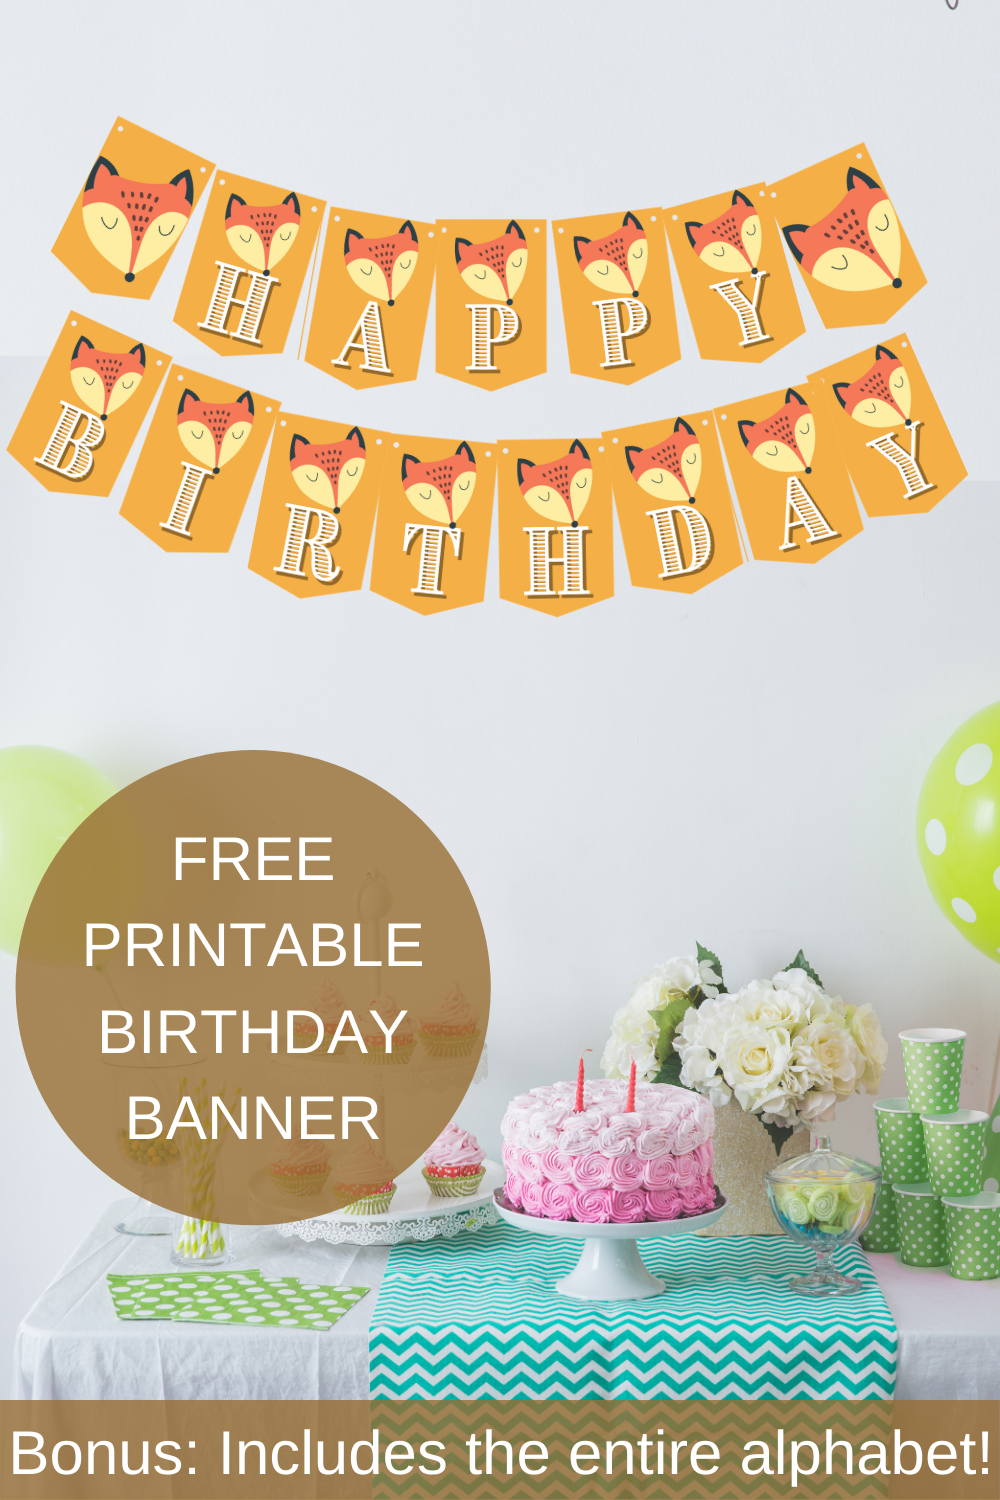 rustic themed banner for a 1st birthday party